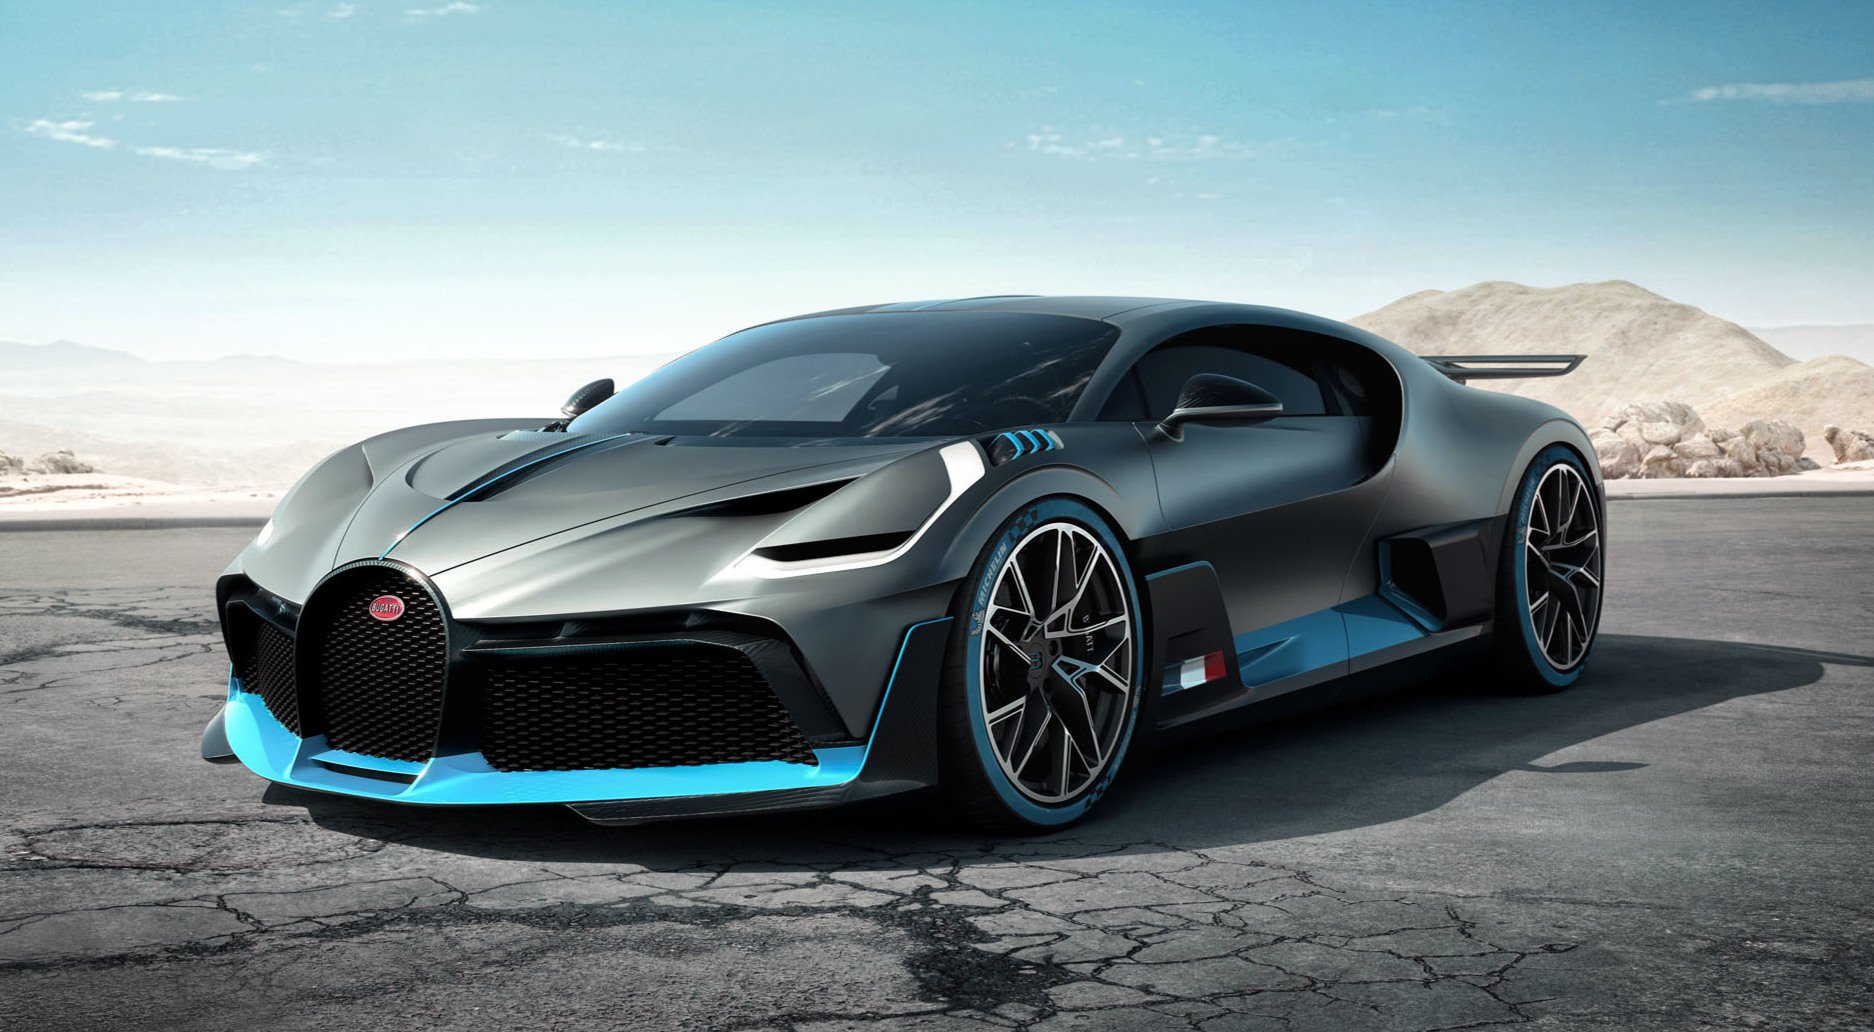 Bugatti Divo - Here are 7 astonishing facts about the $6 million hypercar : Luxurylaunches